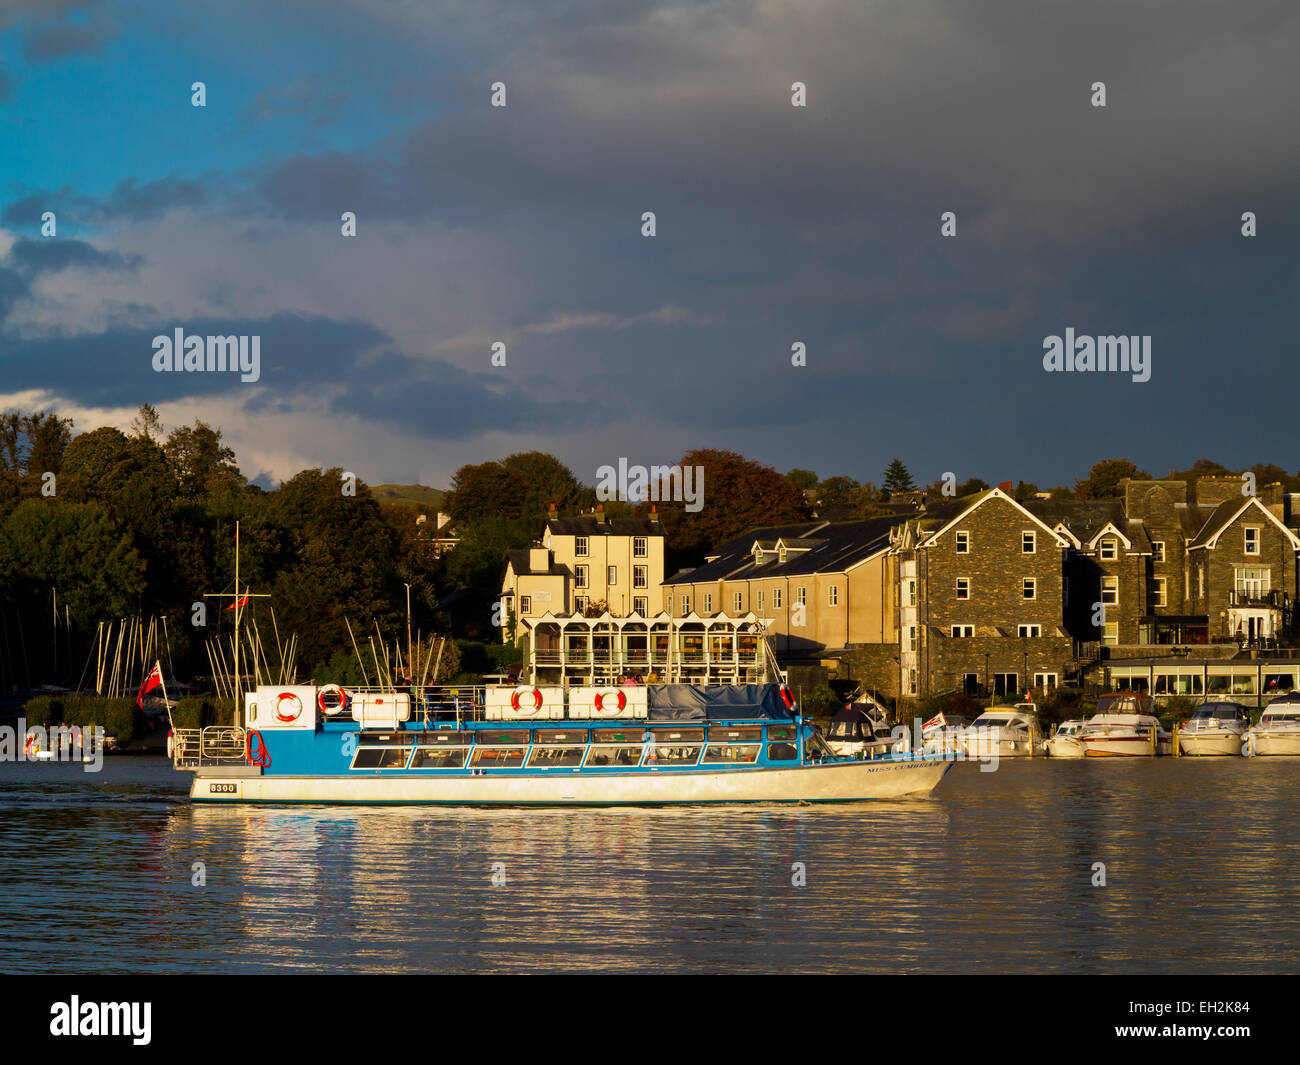 Pleasure boat Miss Cumbria IV arriving at Bowness-on-Windermere in Lake District National Park Cumbria Engalnd UK - Stock Image